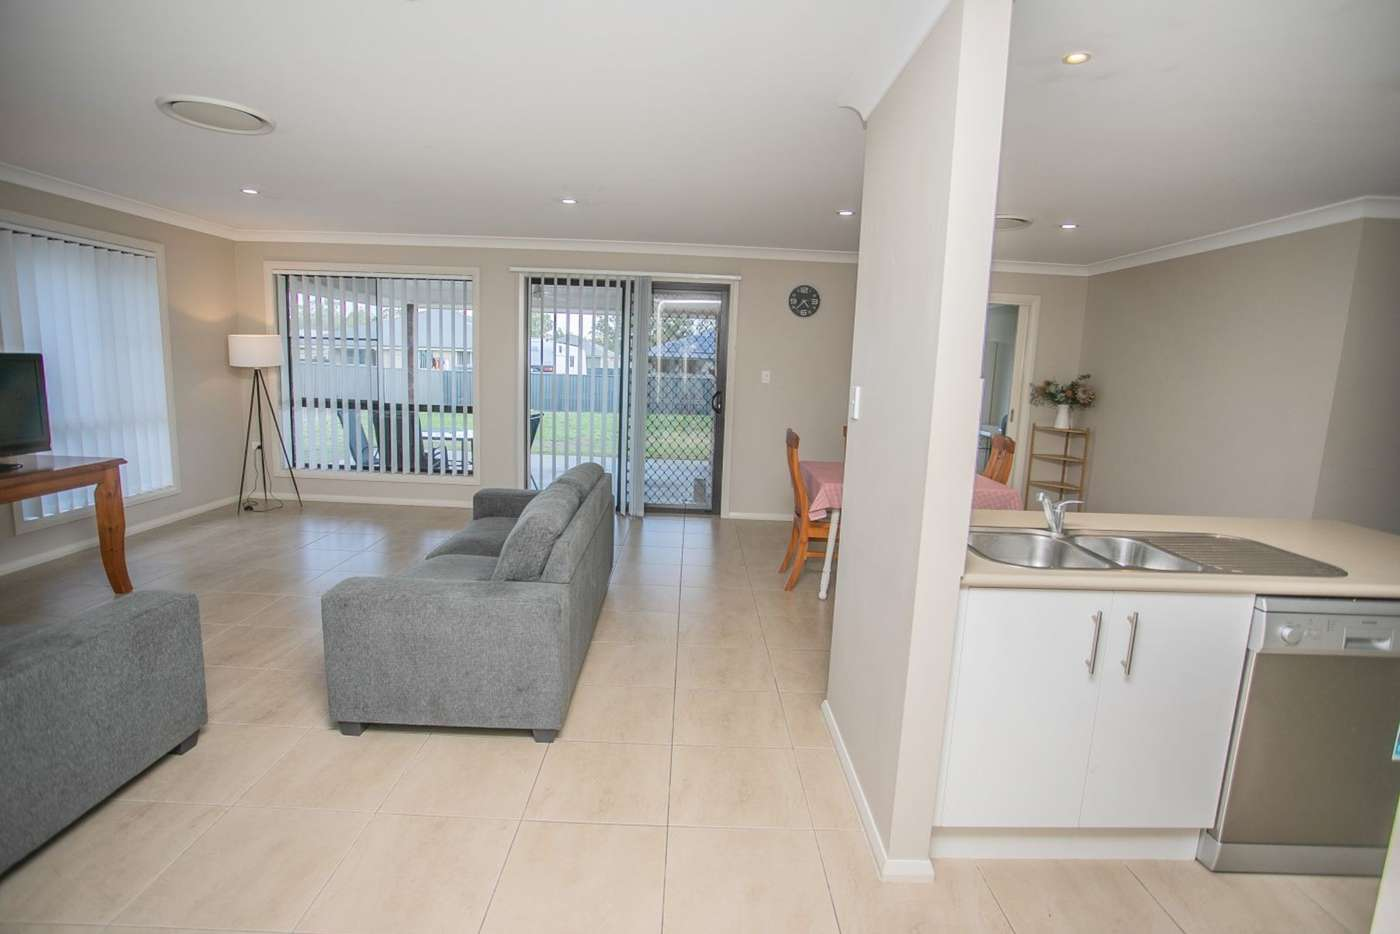 Sixth view of Homely house listing, 10 Gower Street, Chinchilla QLD 4413